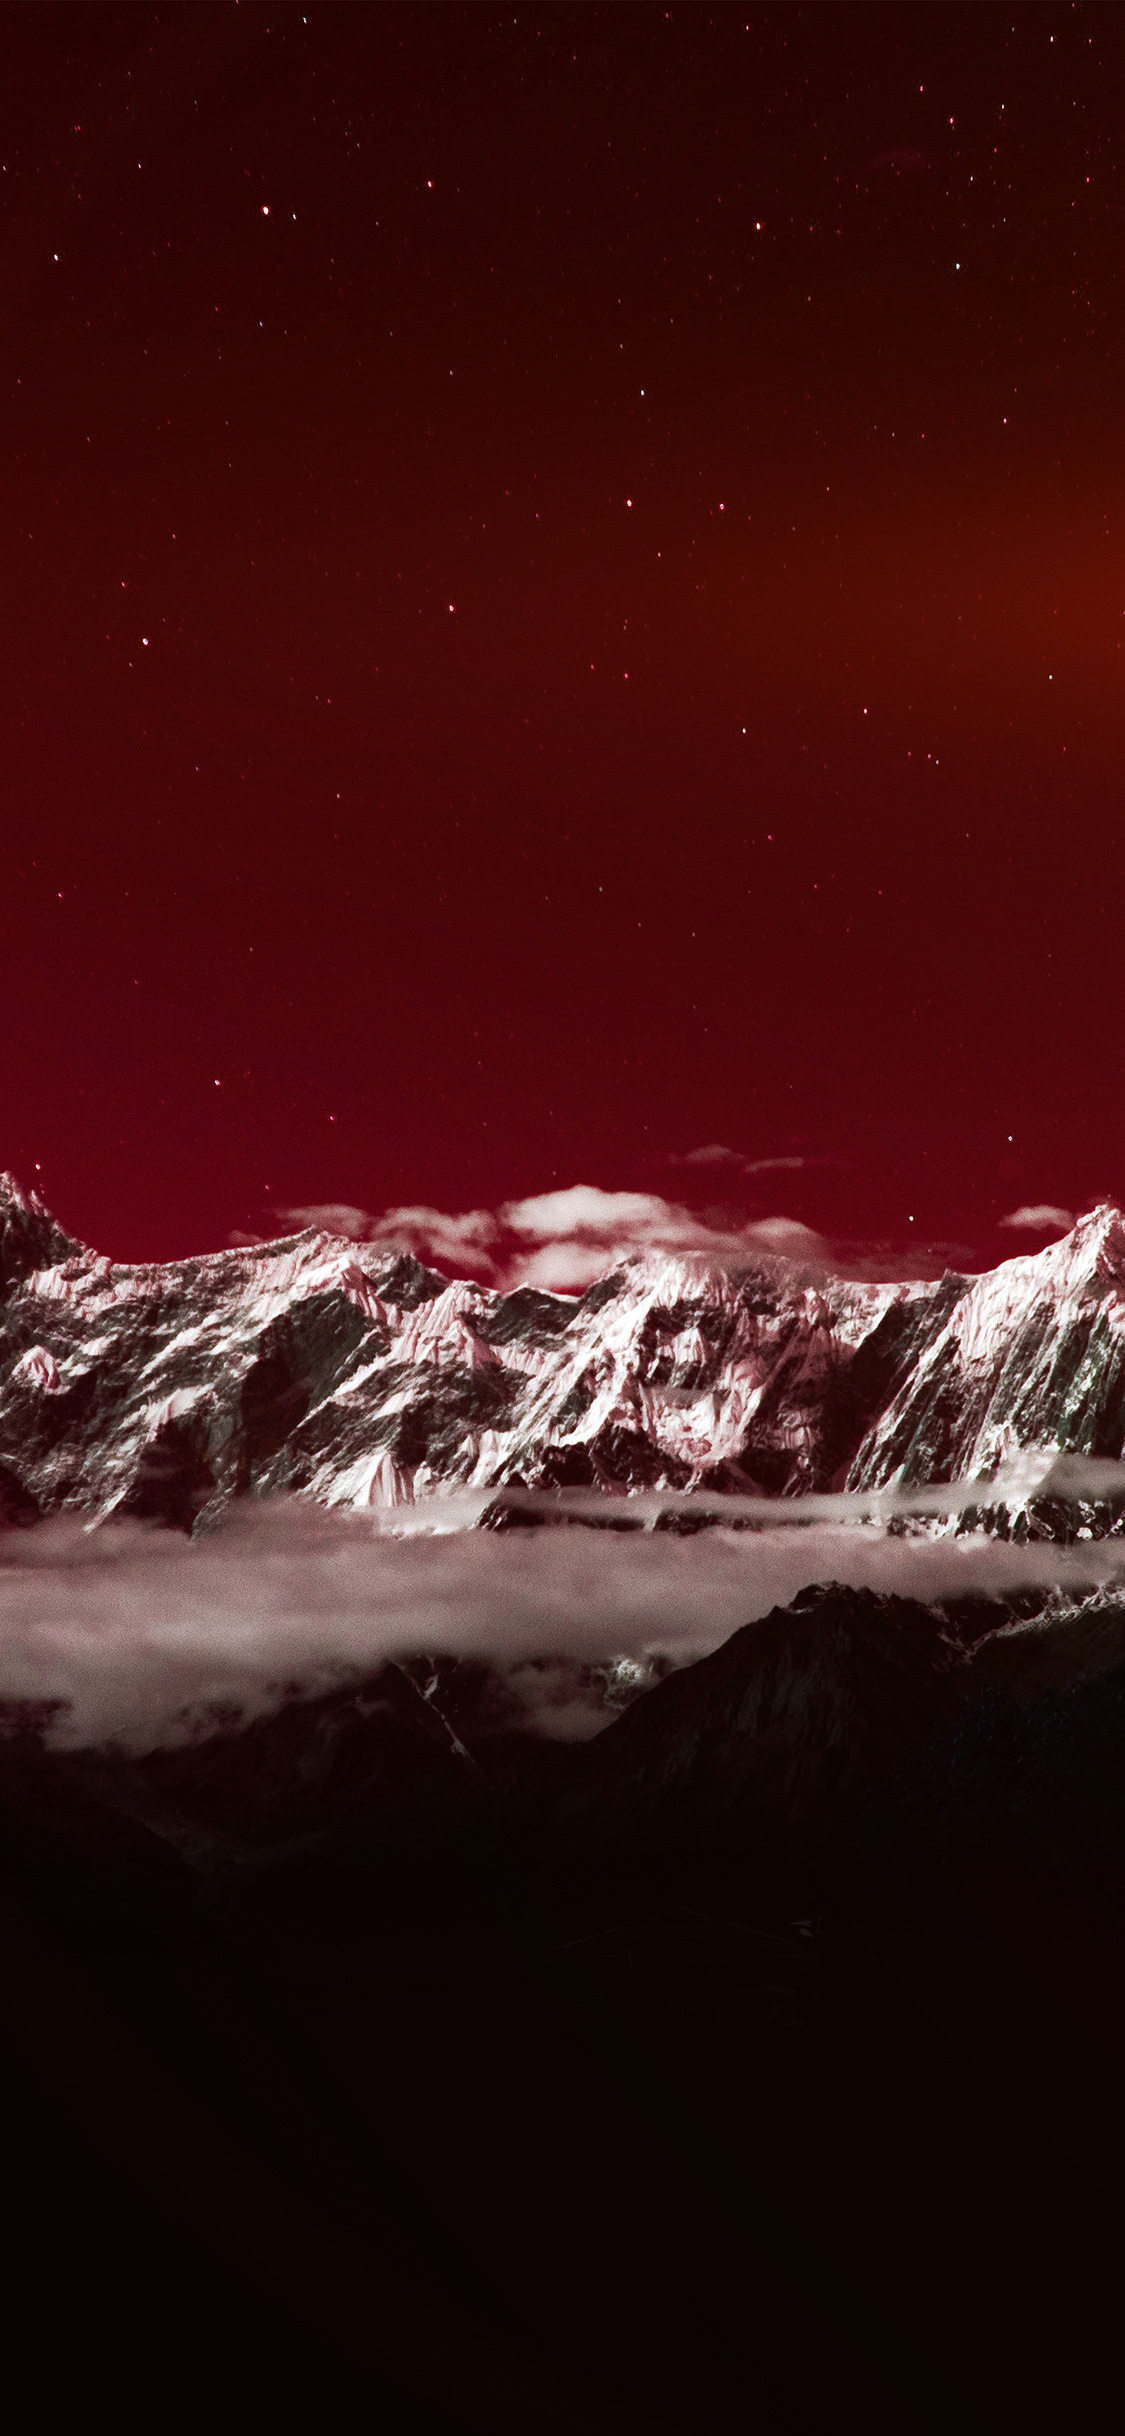 Iphone11papers Com Iphone11 Wallpaper Ng42 Mountain Snow Dark Red Winter Sky Star